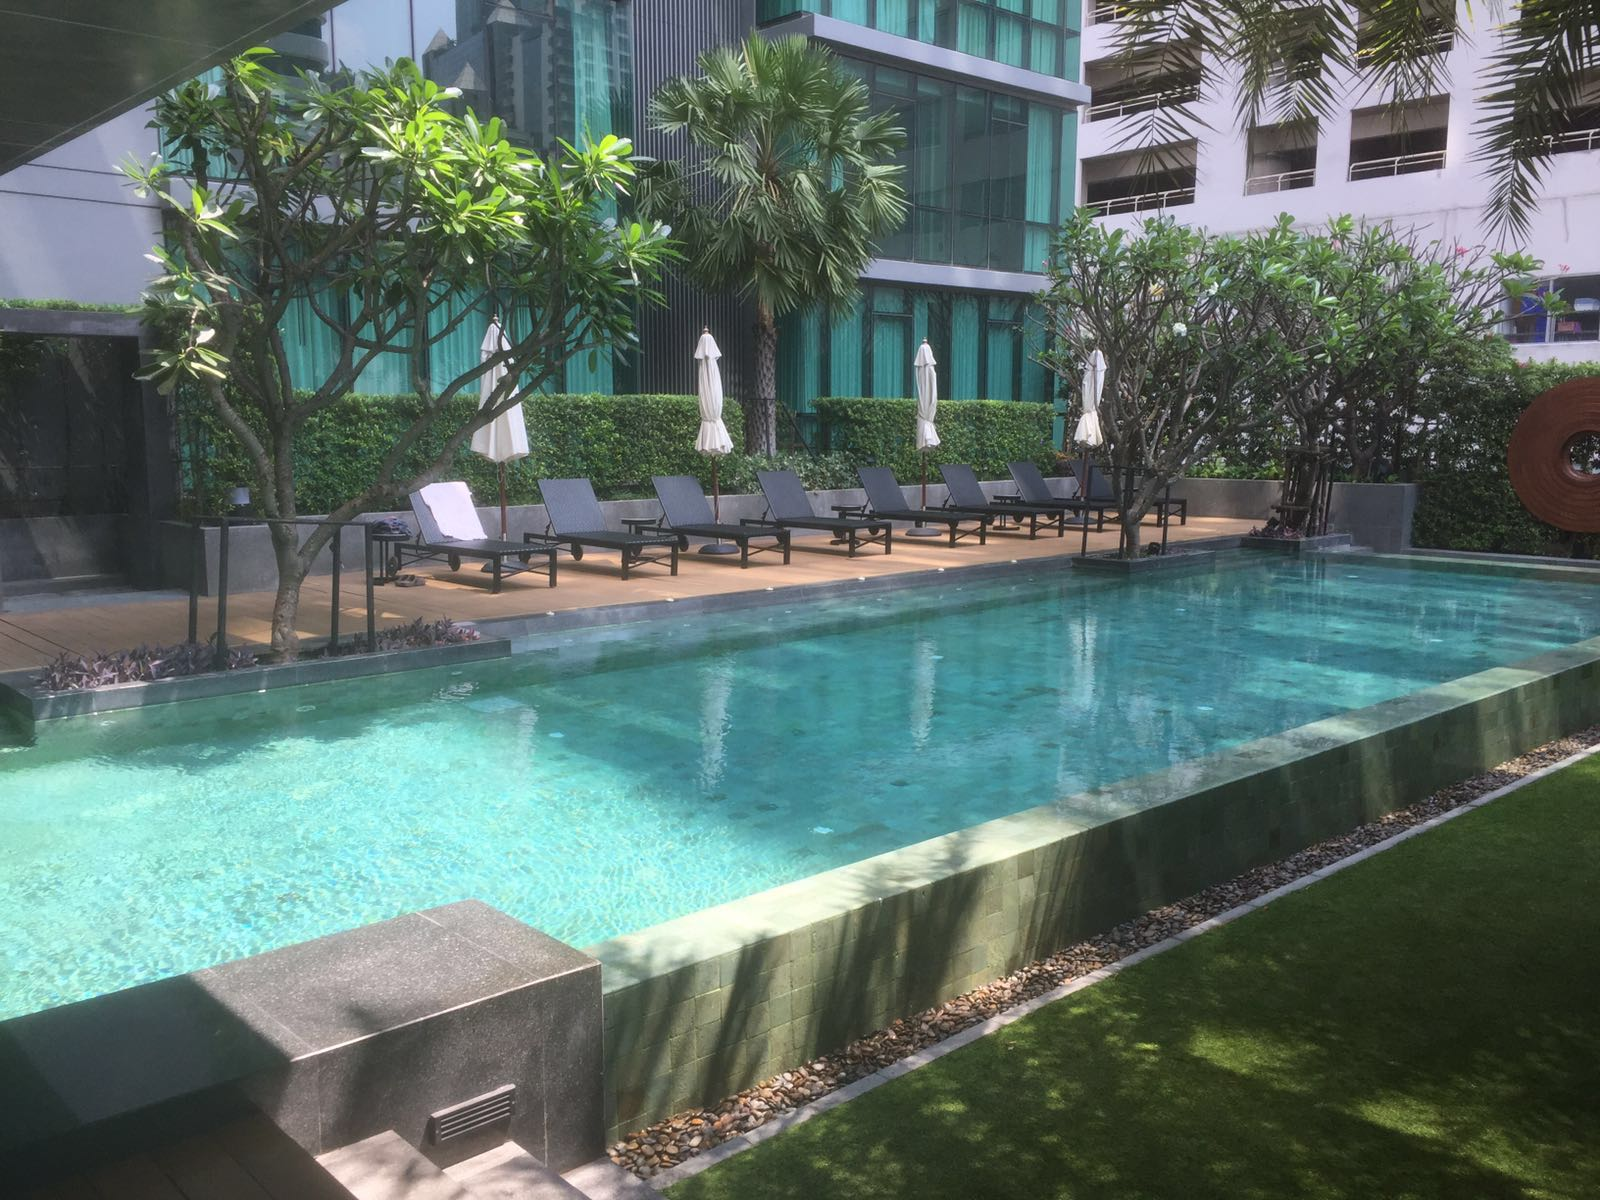 RE/MAX All Star Realty Agency's The Room Sukhumvit 21 large one bedder (53sqm) for sale/rent cheap 8